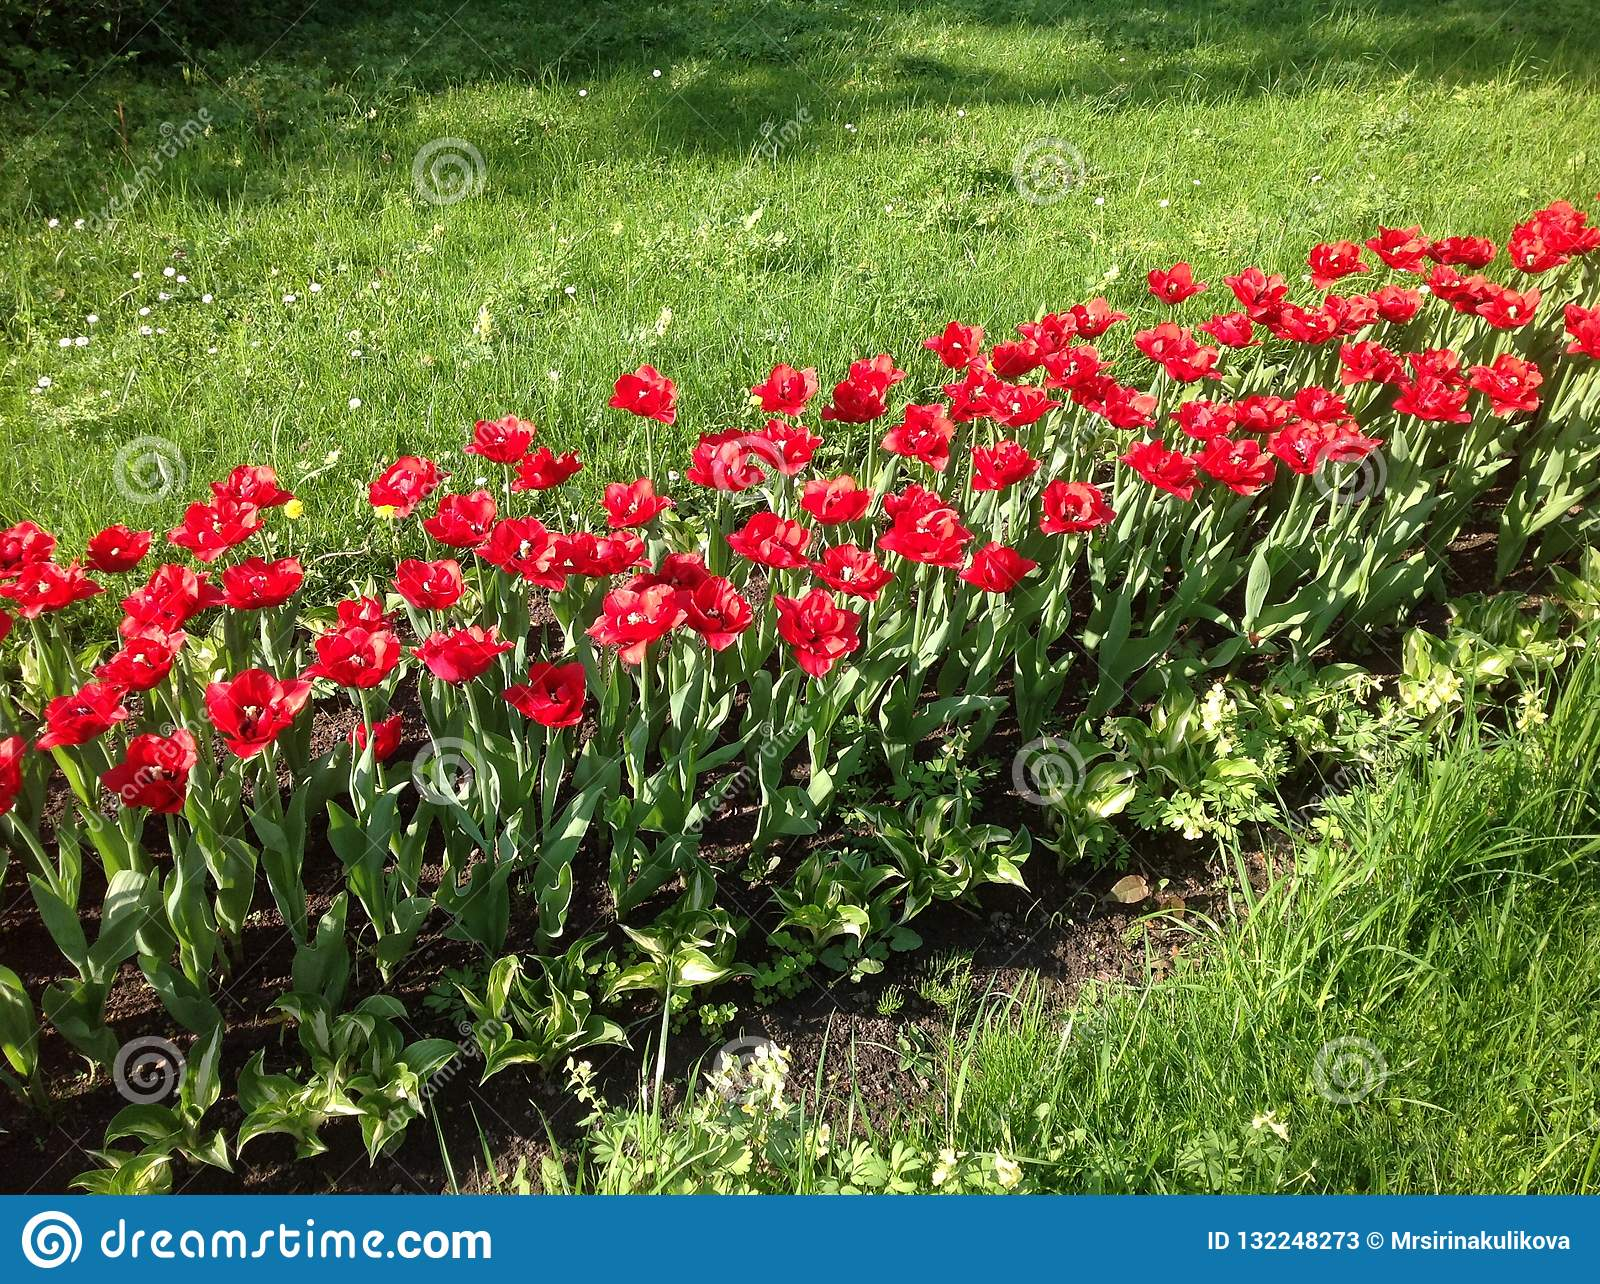 Row of red tulips surrounded by green grass in the sunlight